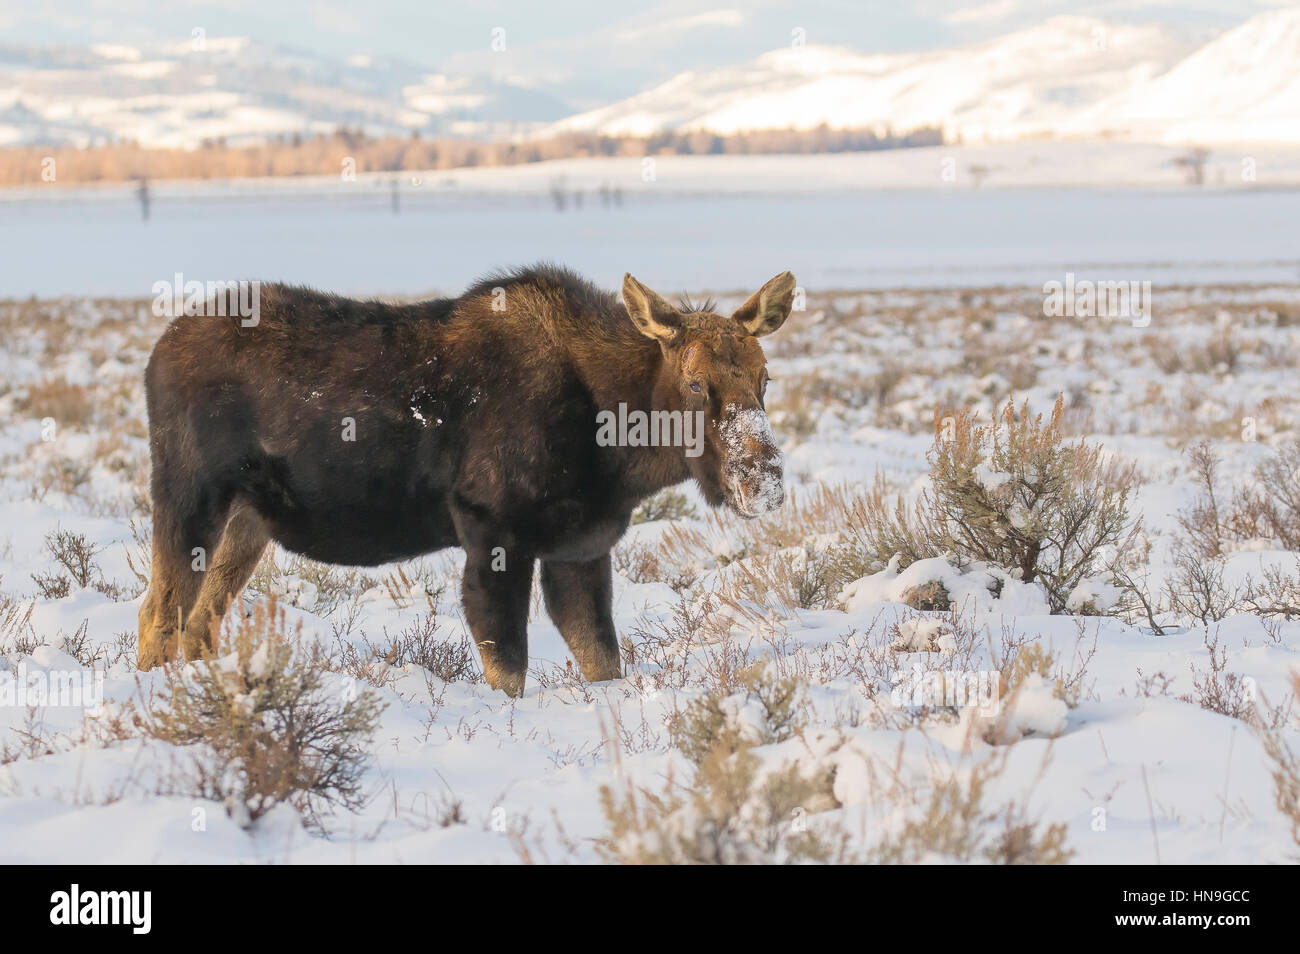 Bull moose that has lost antlers digging in deep snow for food - Stock Image